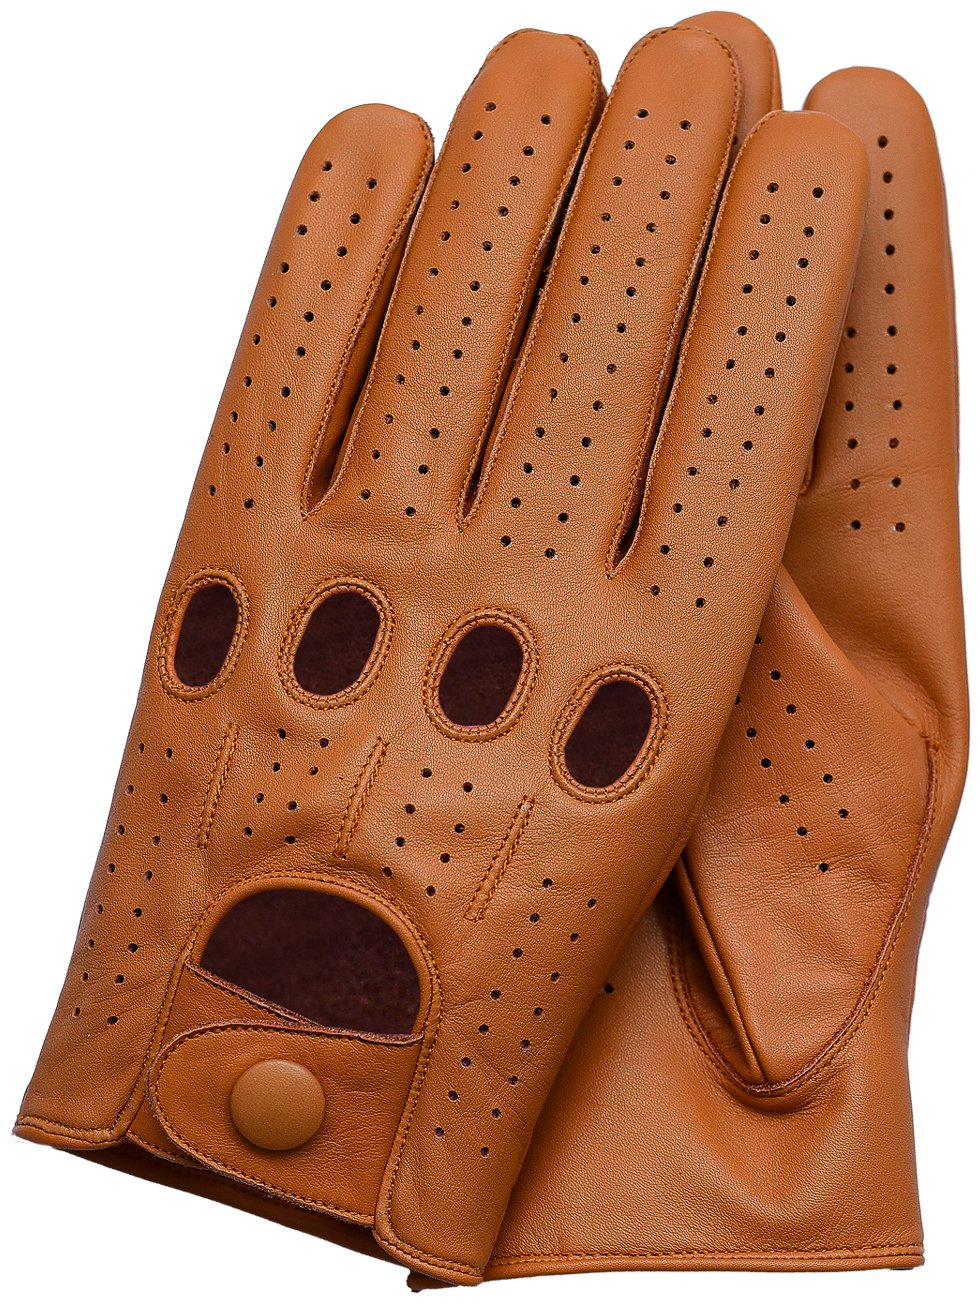 Riparo Women's Unlined Leather Driving and Riding Gloves (7.5, Tan) by Riparo Motorsports